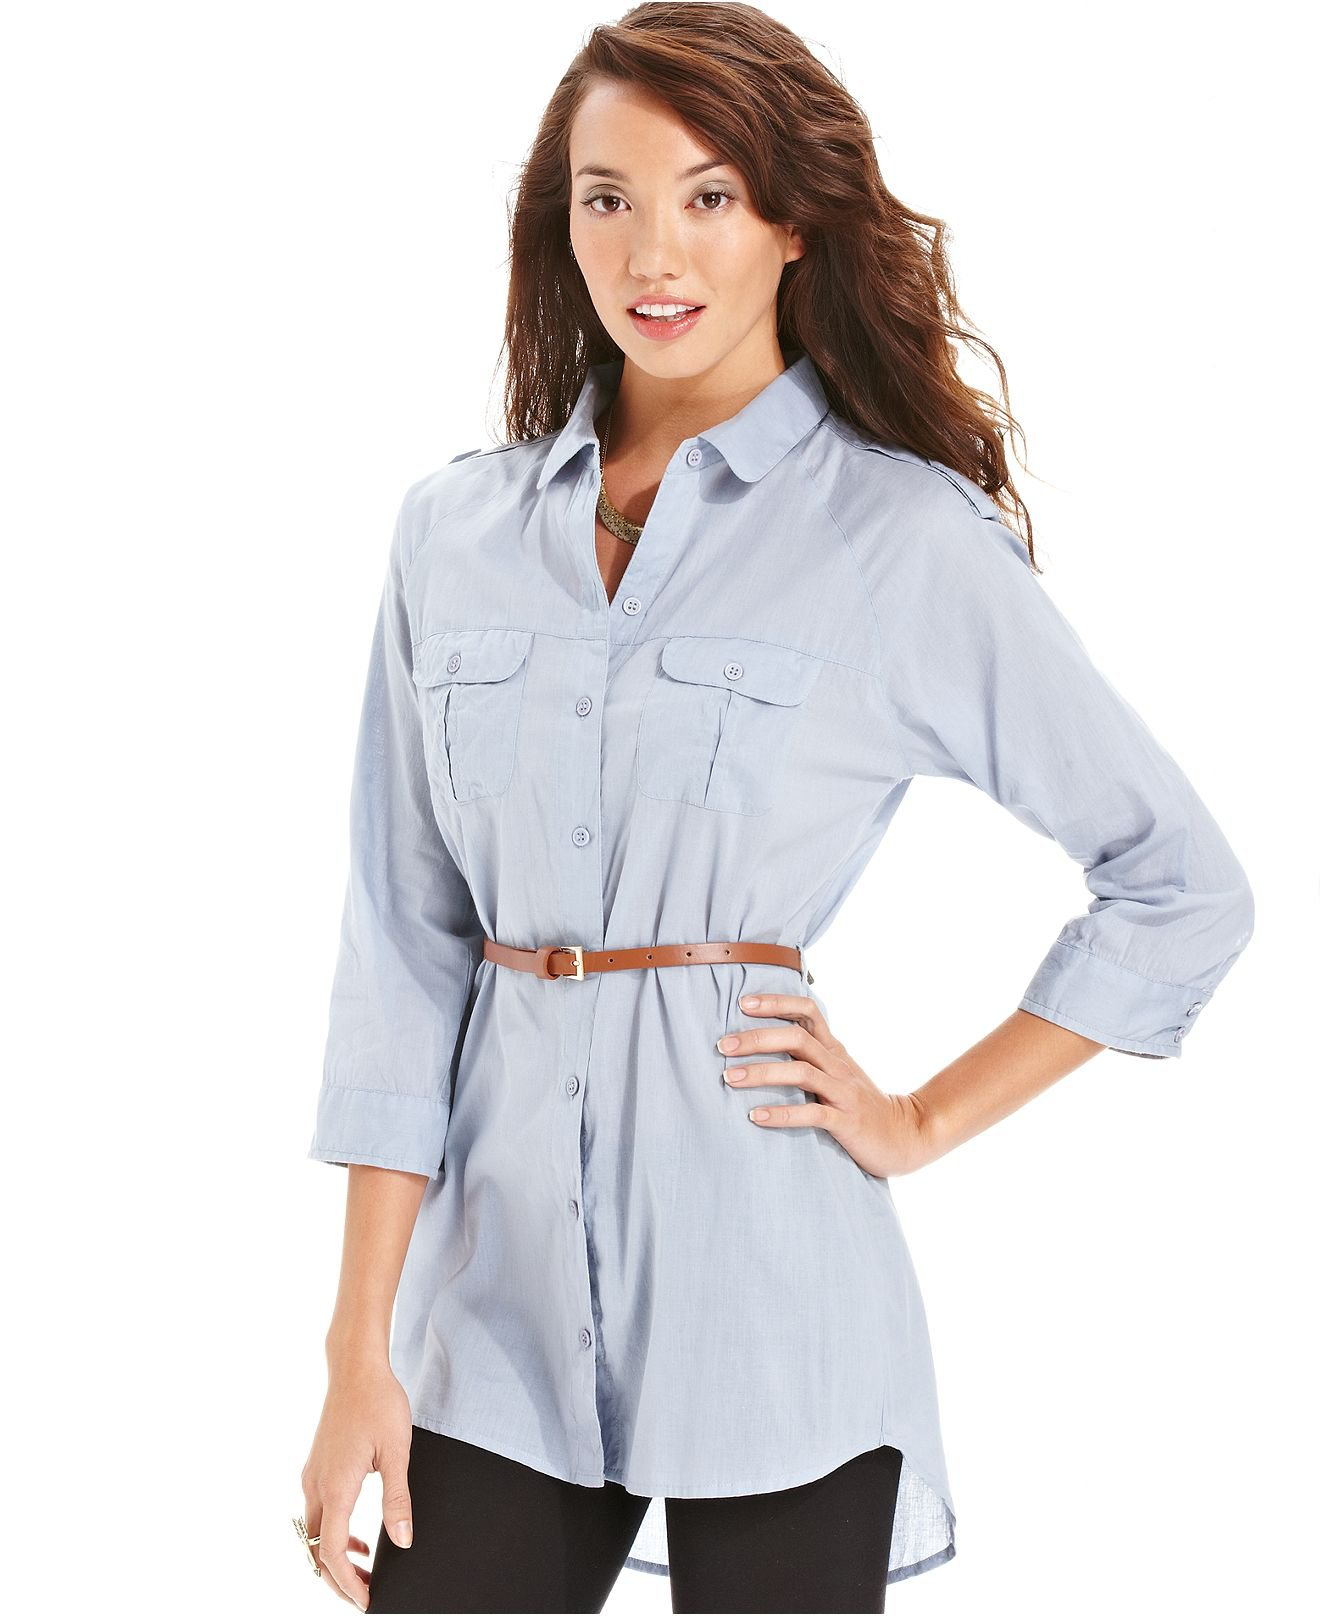 Juniors Tops & Attractive Juniors Blouses. Slip into the coolest styles with our wide variety of juniors' tops. Whether you're revamping your wardrobe for the new school year, getting in touch with the season's trends or just looking for the perfect outfit for a special occasion, we've got it all, and at the right price!